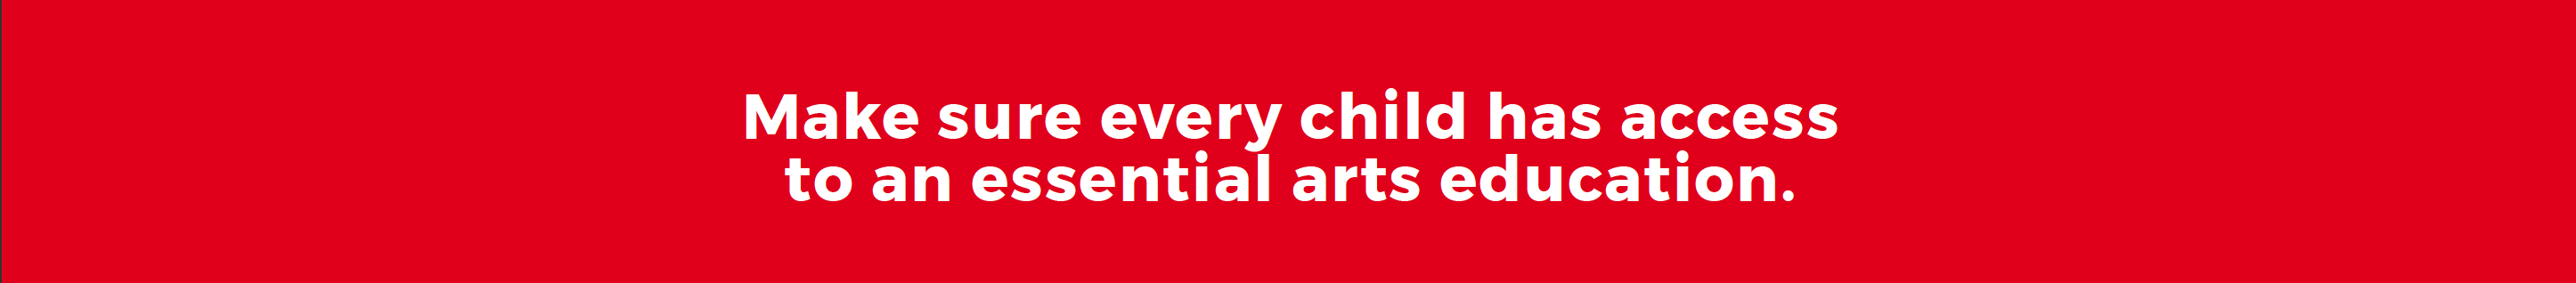 Access to essential arts education